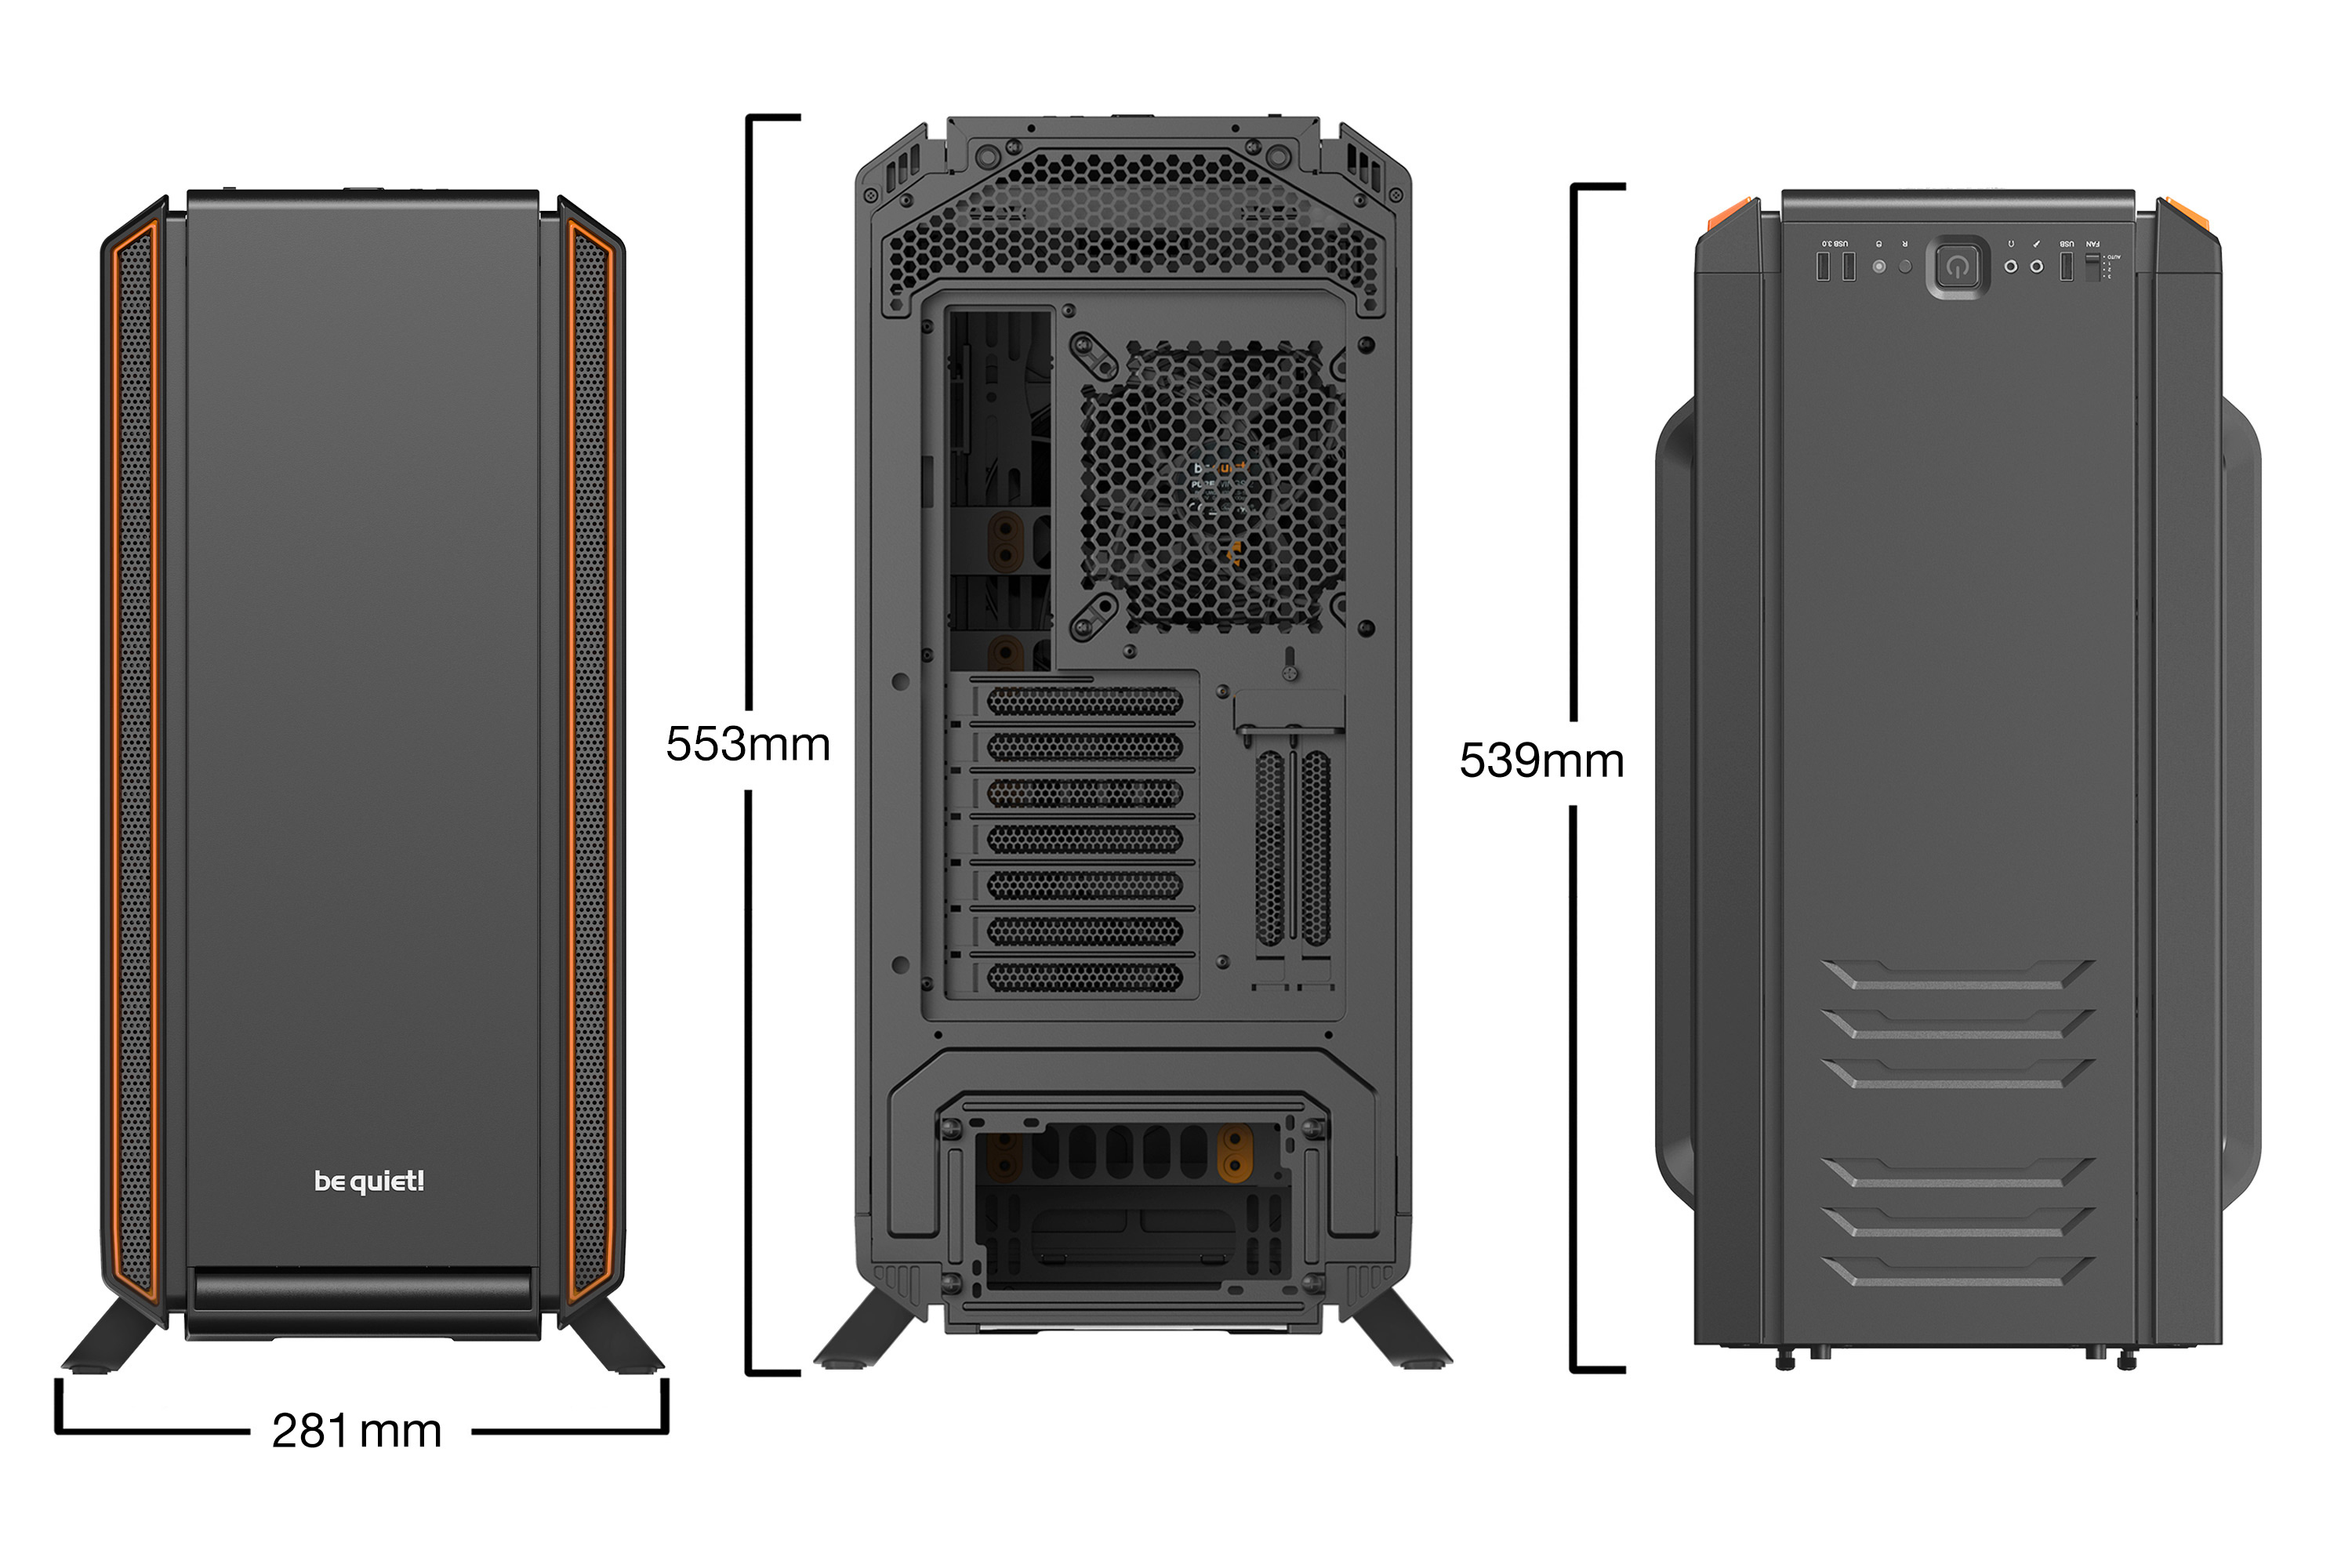 be quiet! Silent Base 801 Orange, 539 x 281 x 553, IO-panel 2x USB 3.0, 1x USB 2.0, HD Audio, 5 (7) x 3,5, 11 (15) x 2,5, inc 2x Front / 1x Rear 140 mm Pure Wings 2, dual air channel cooling, 3-in-1 airintake sidepanel